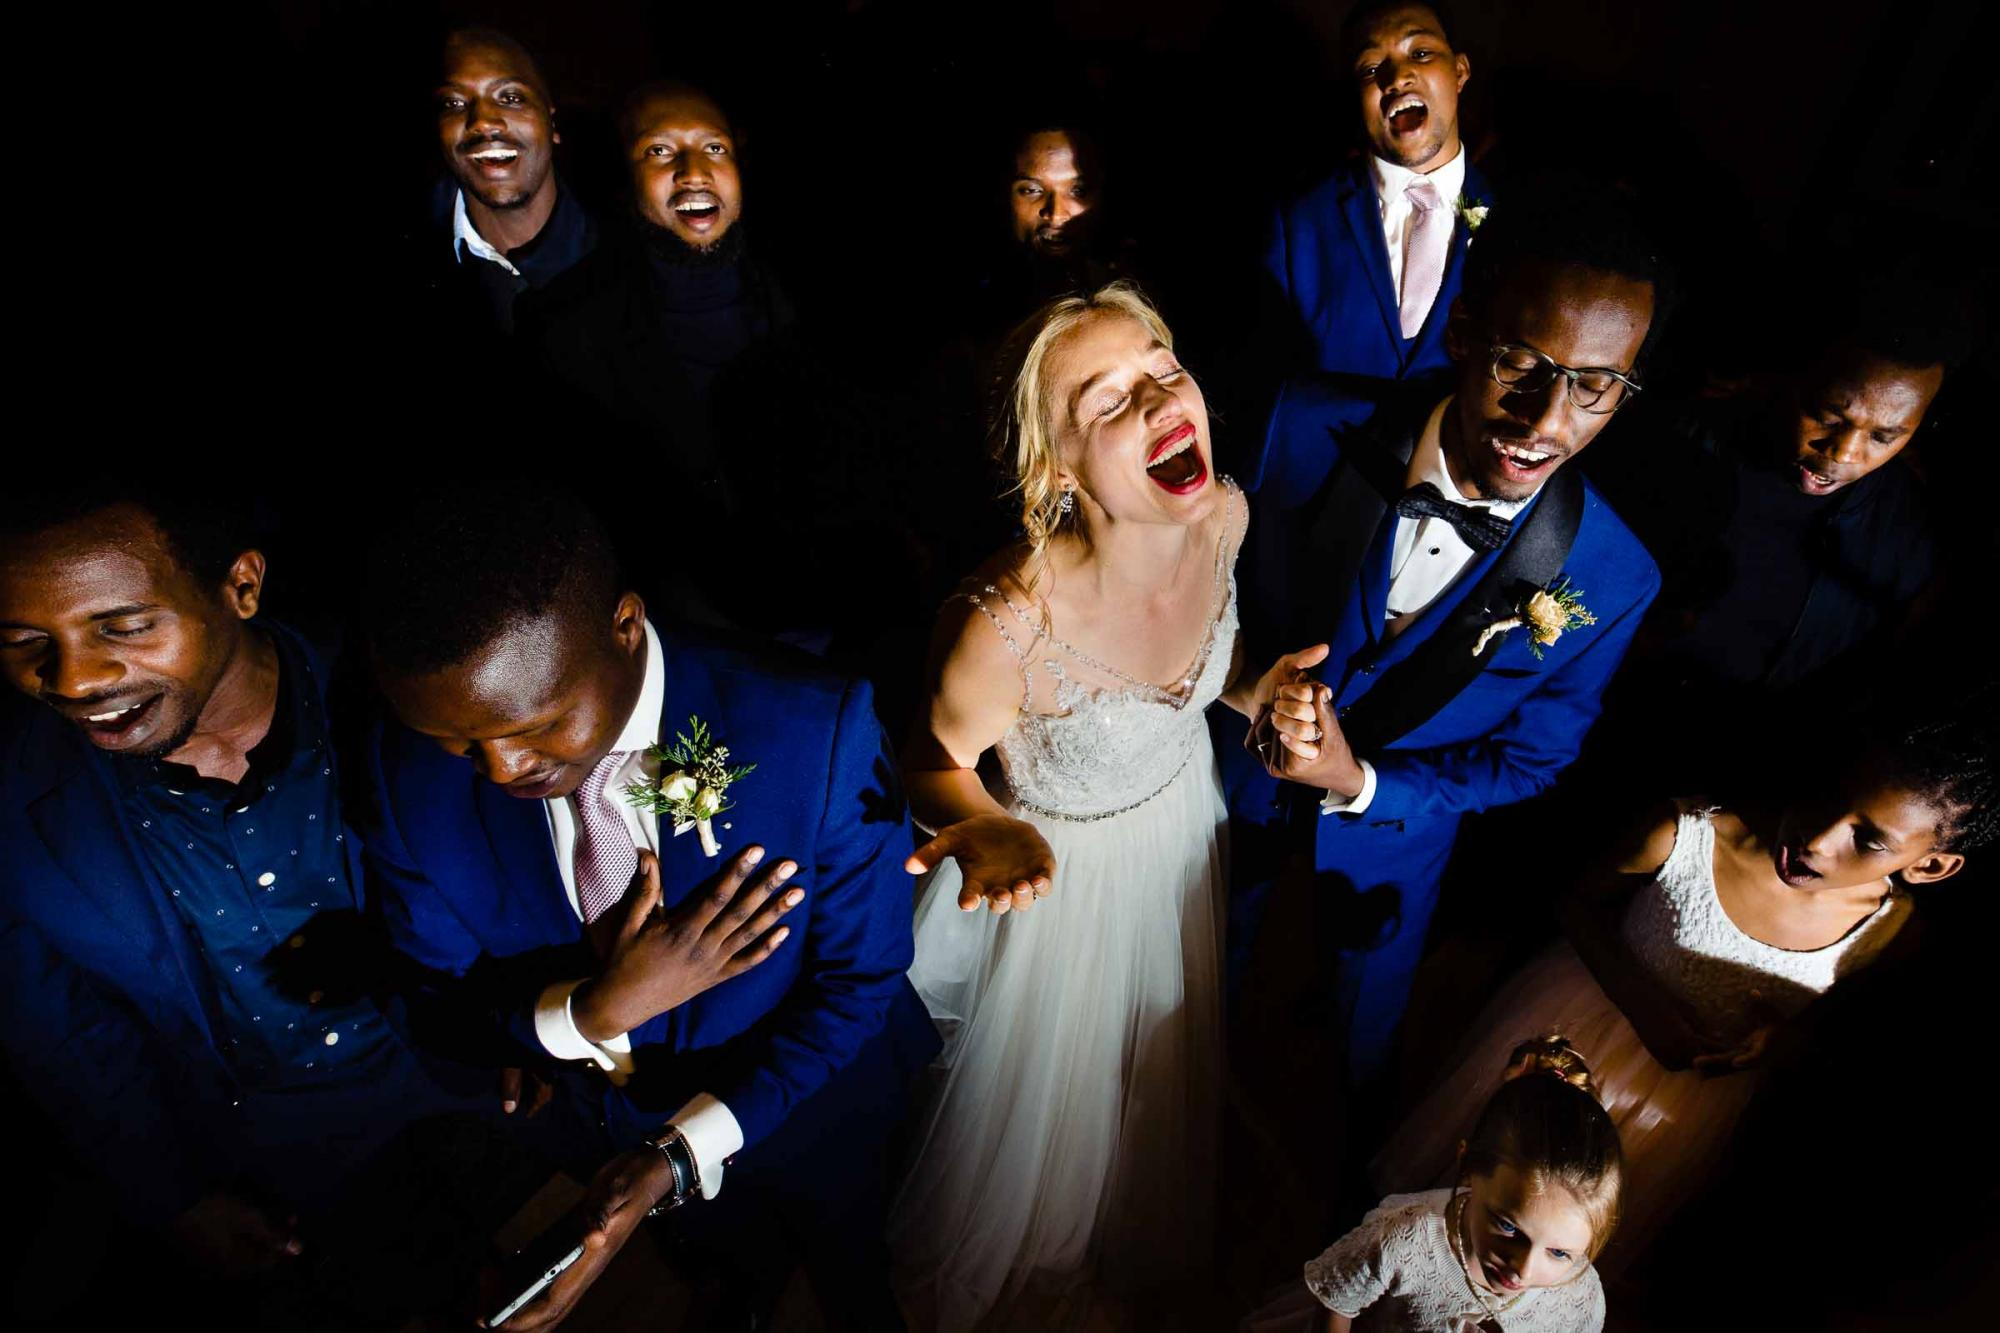 Couple and groomsmen singing - photo by JOS & TREE